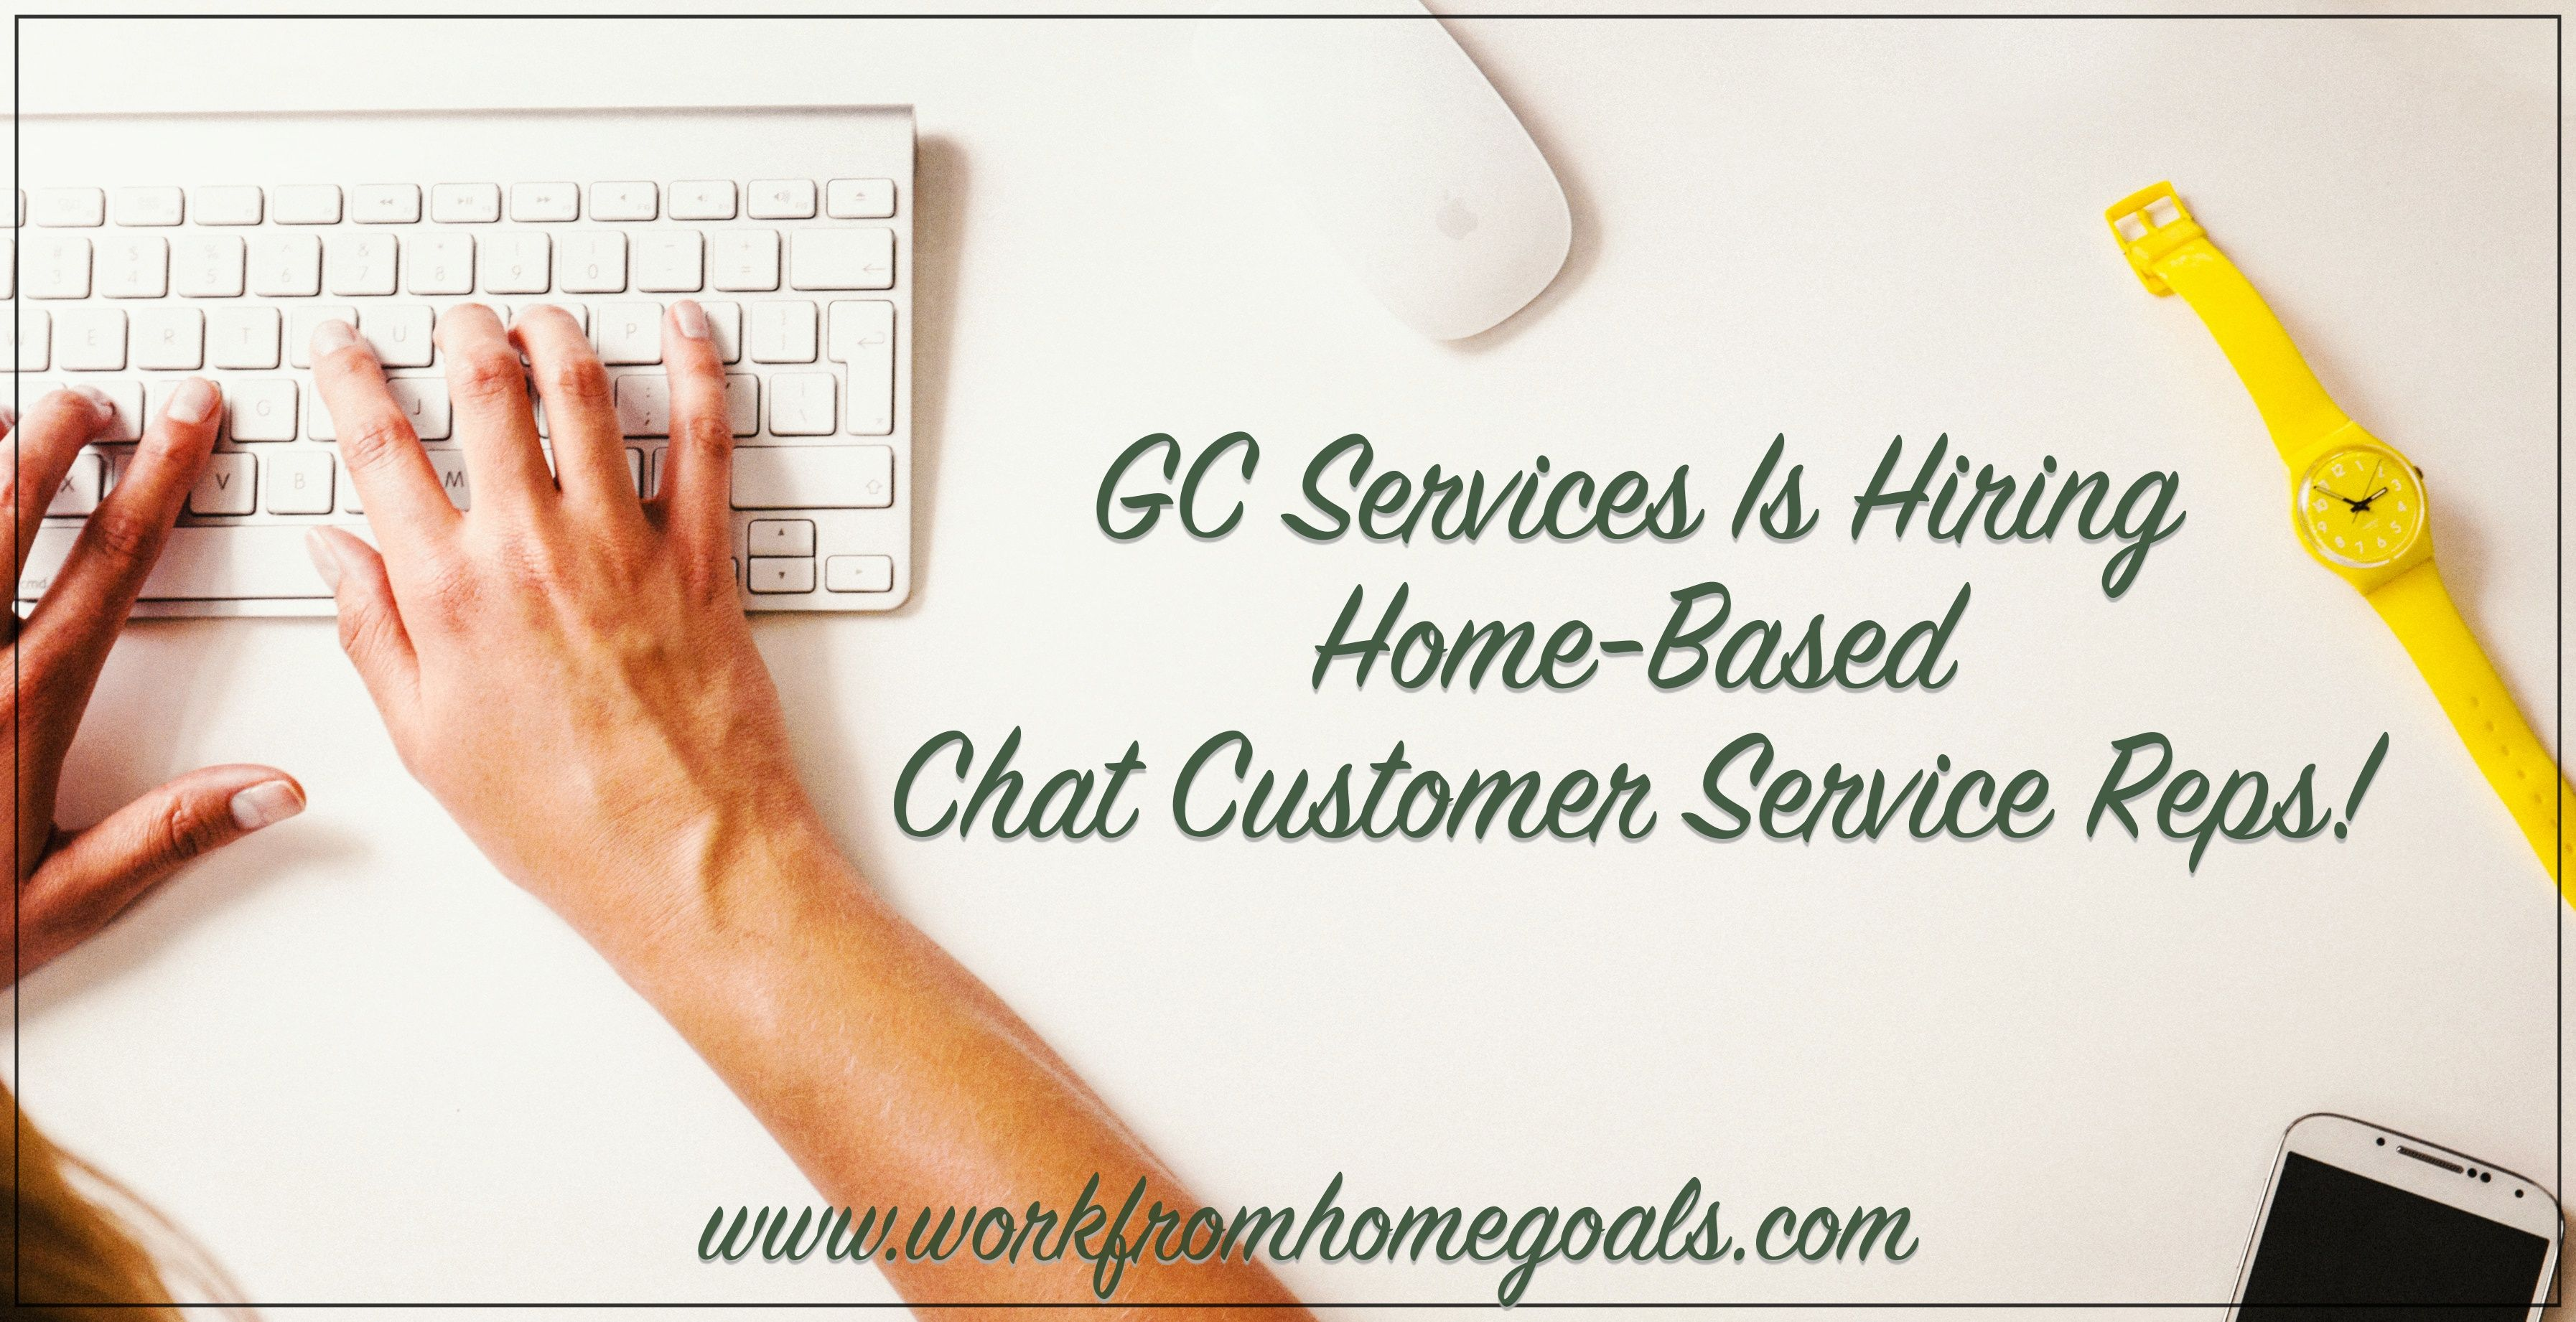 GC Services Is Hiring HomeBased Chat Customer Service